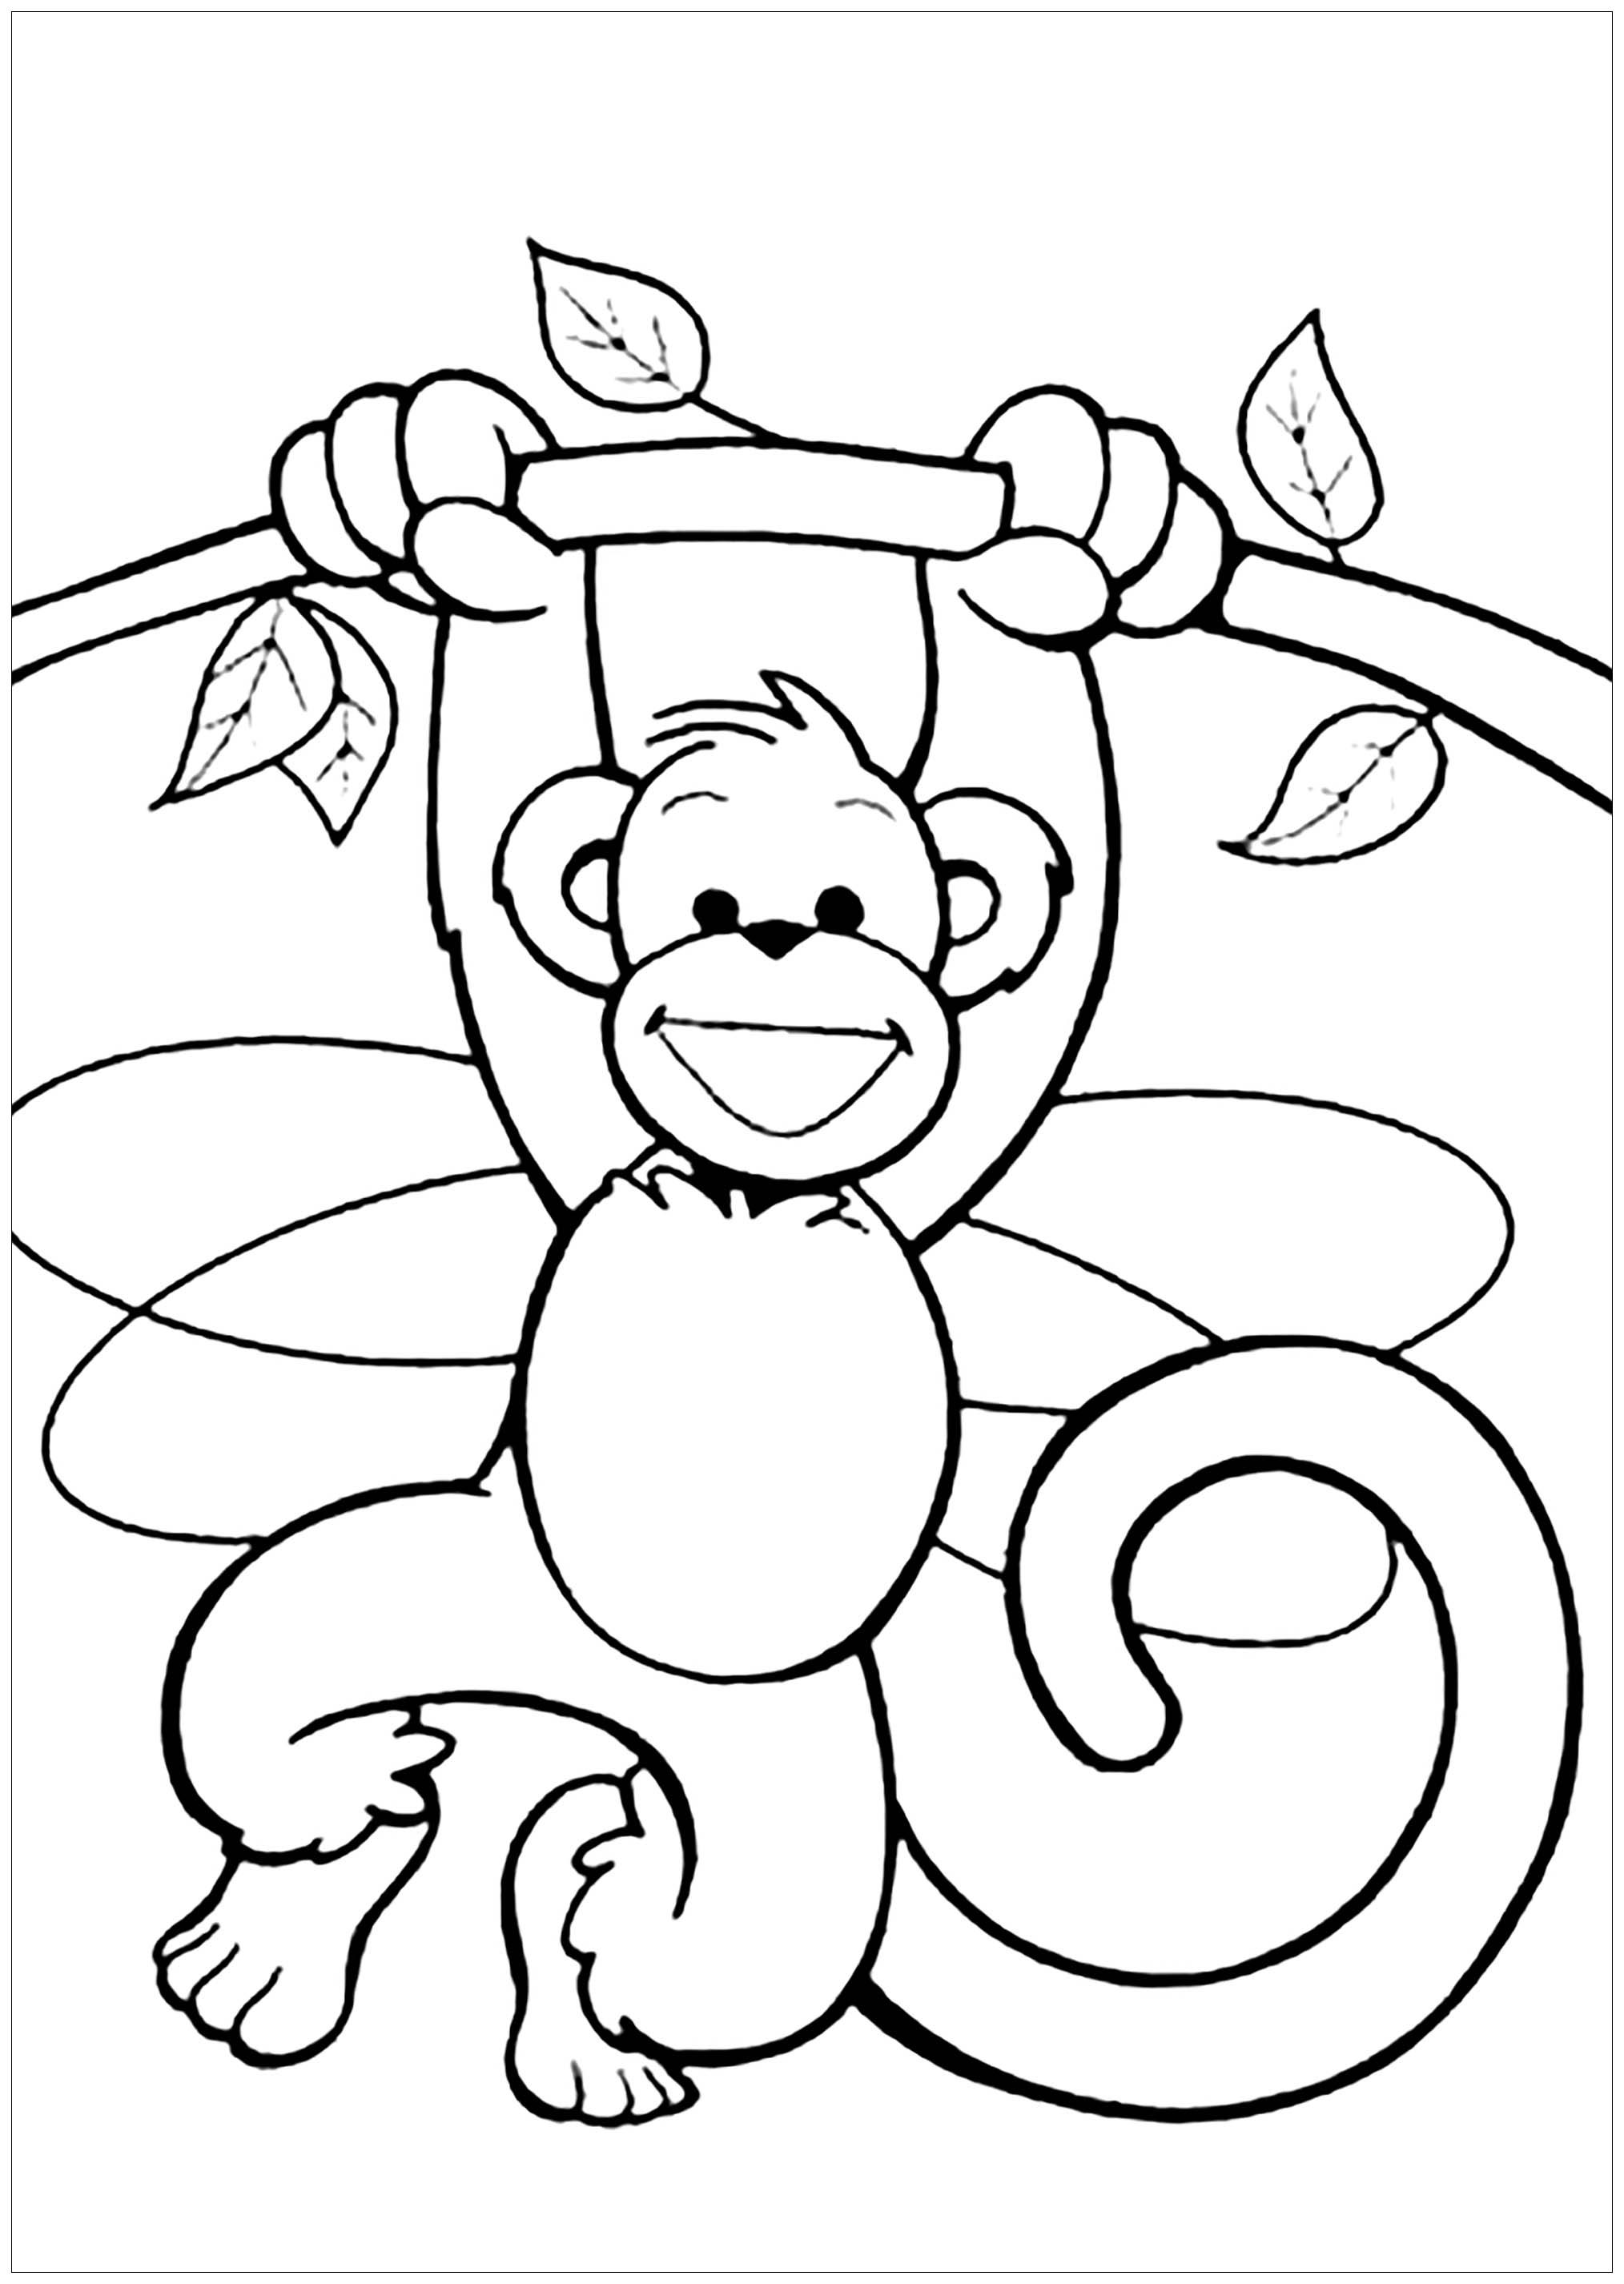 coloring picture of monkey monkeys to color for kids monkeys kids coloring pages monkey coloring picture of